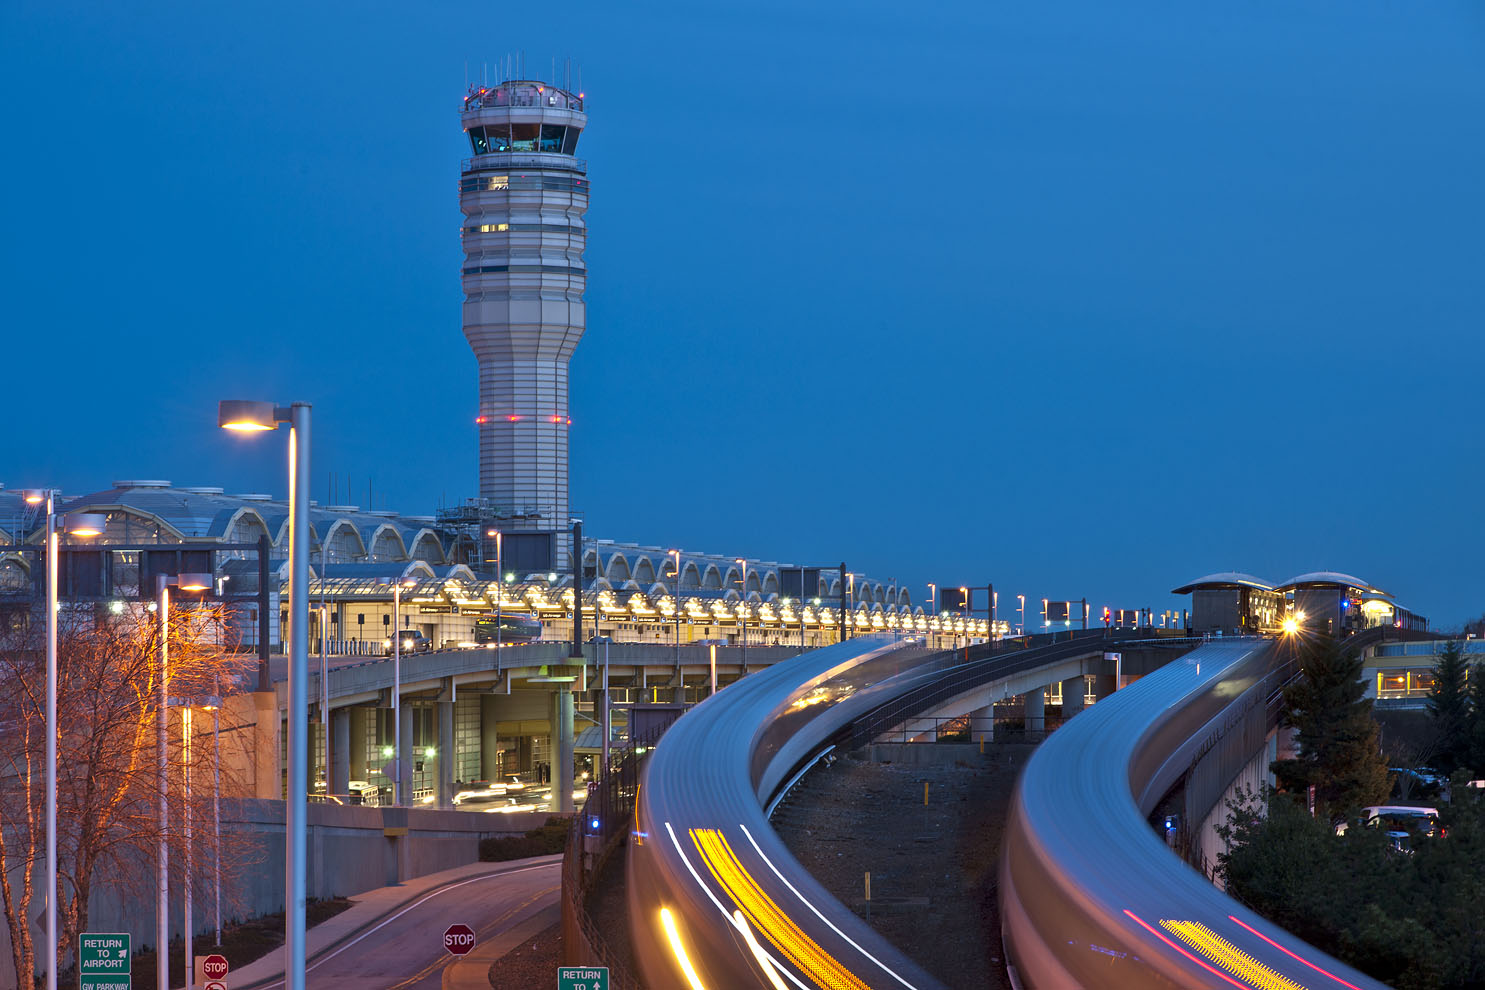 subway trains approaching airport at night